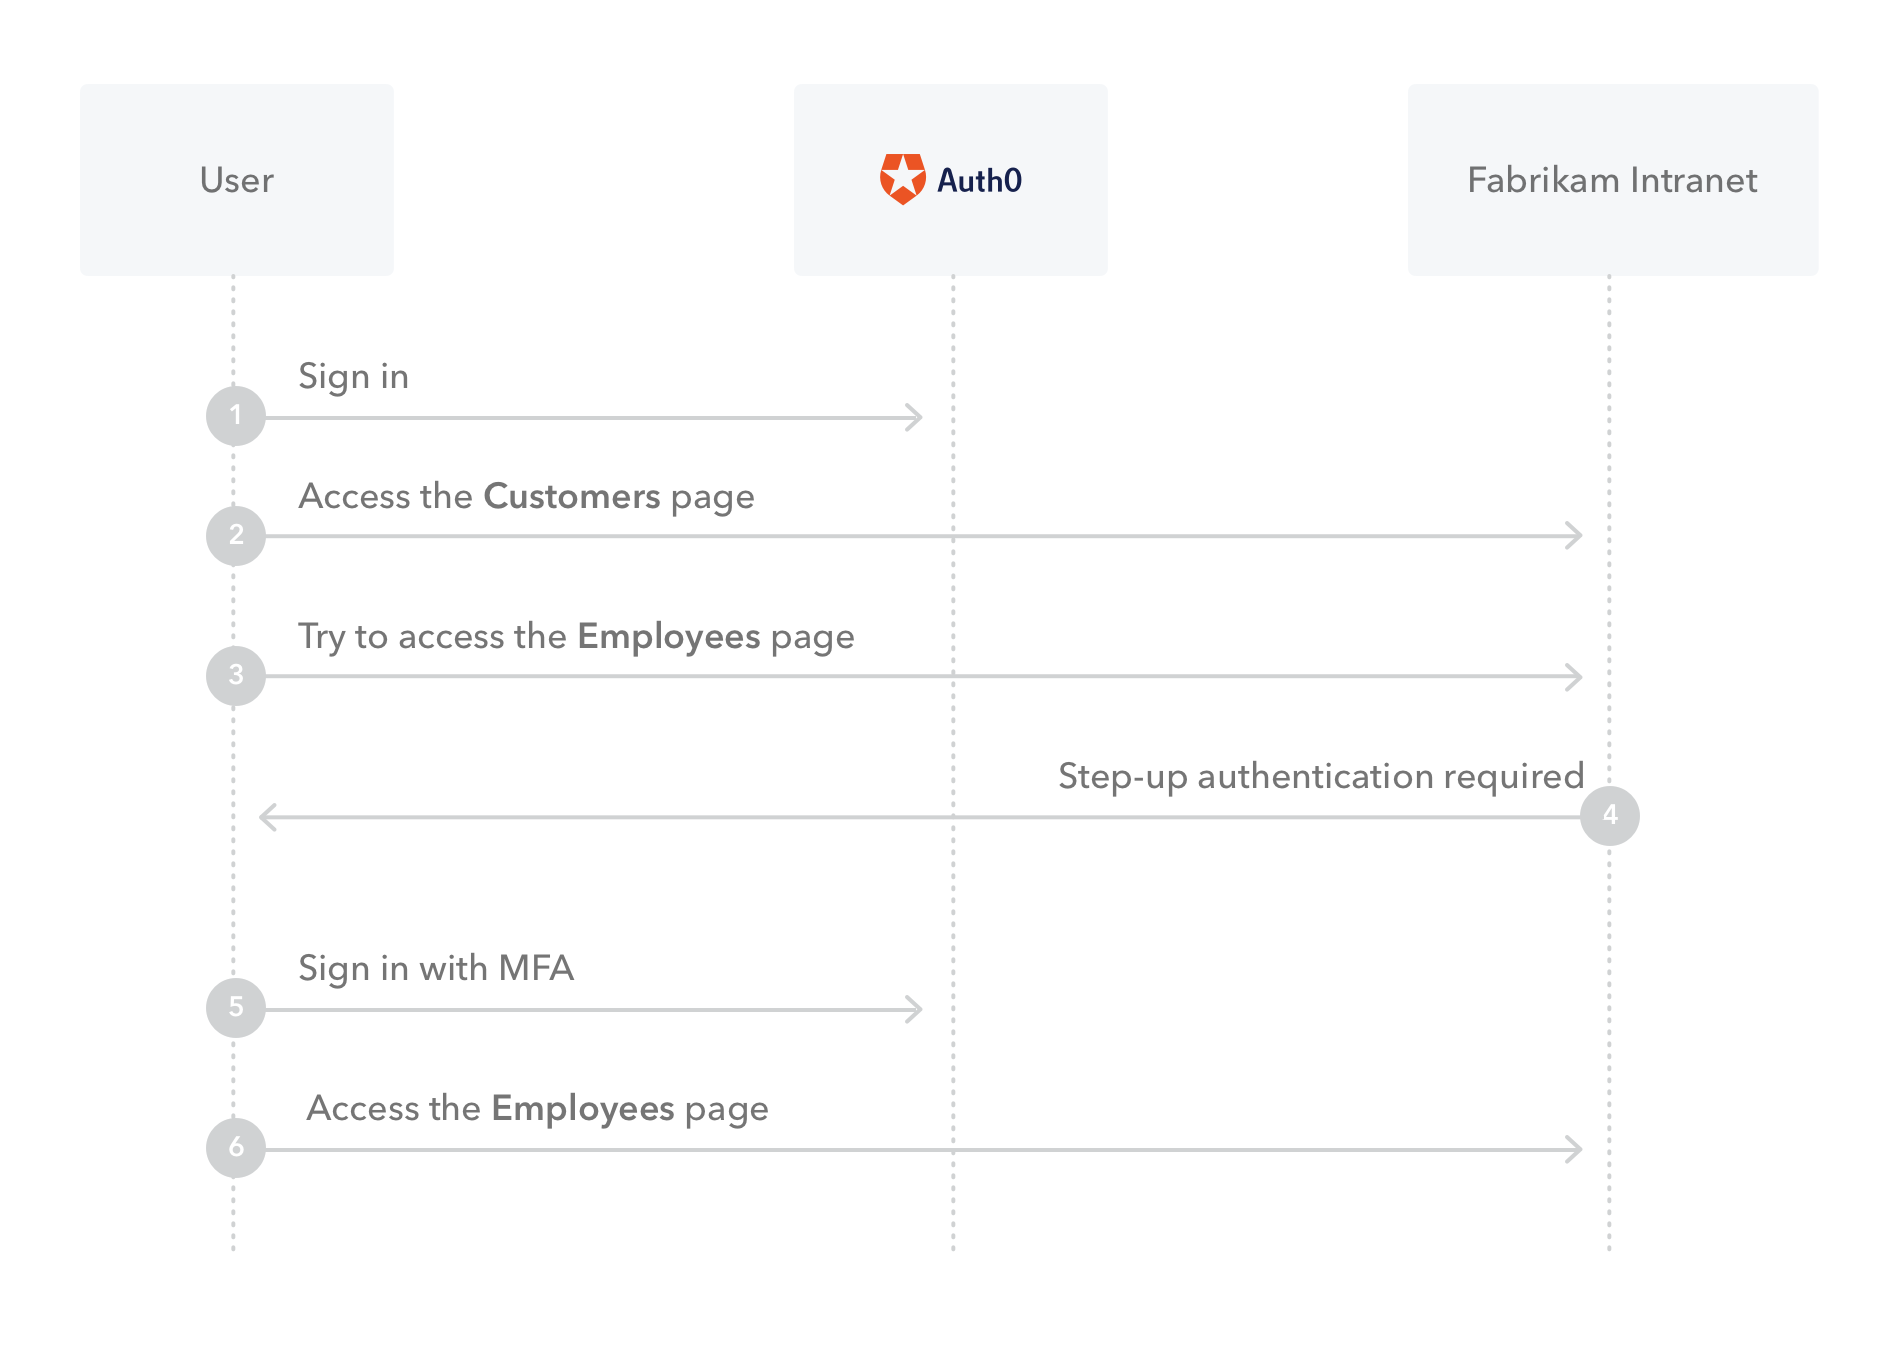 Illustration of architectural flow of set-up authentication with Auth0